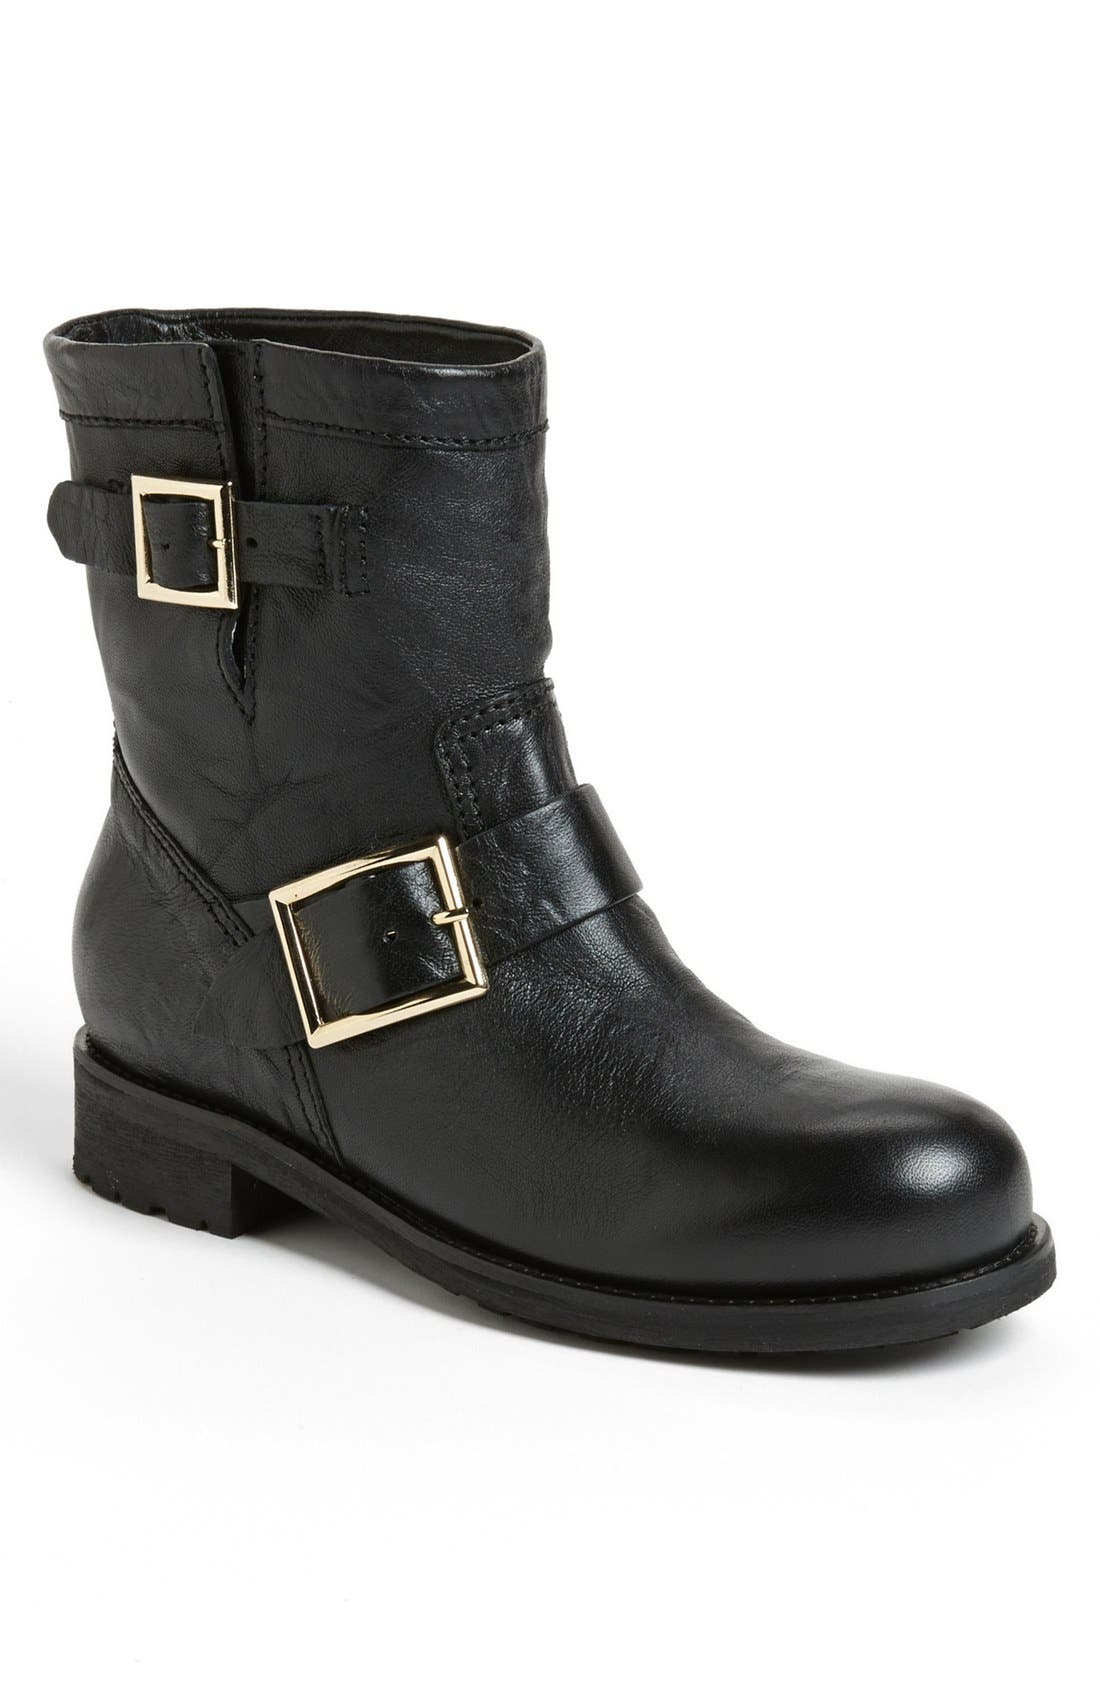 Main Image - Jimmy Choo 'Youth' Short Biker Boot (Women)